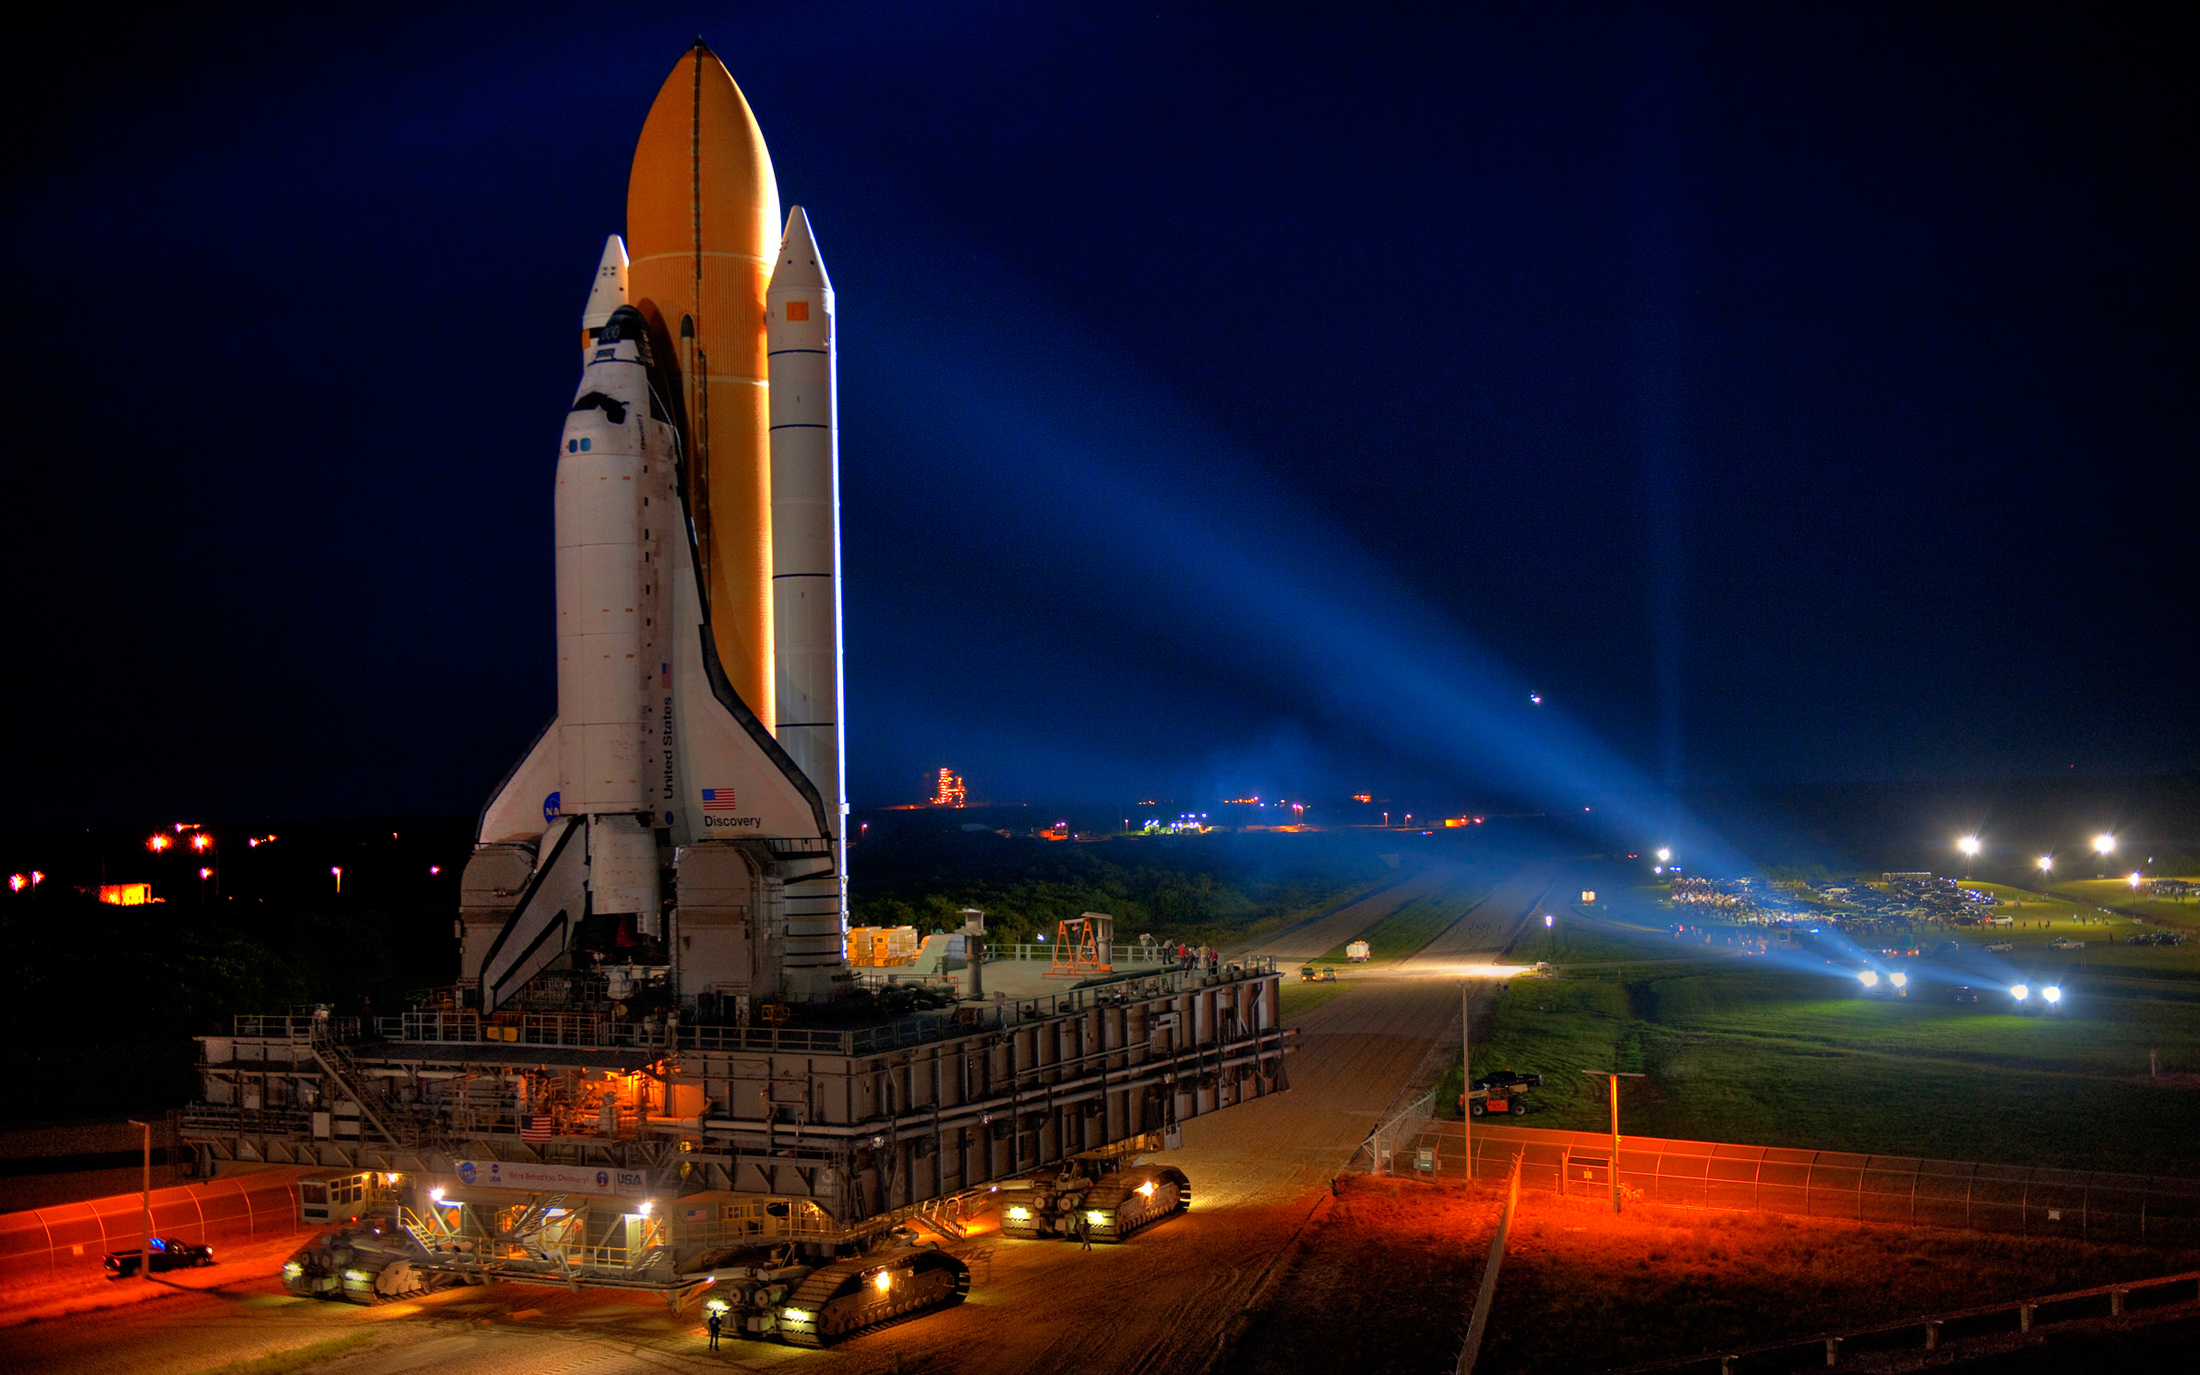 Space Shuttle Discovery Wallpapers and Background Images   stmednet 2200x1375